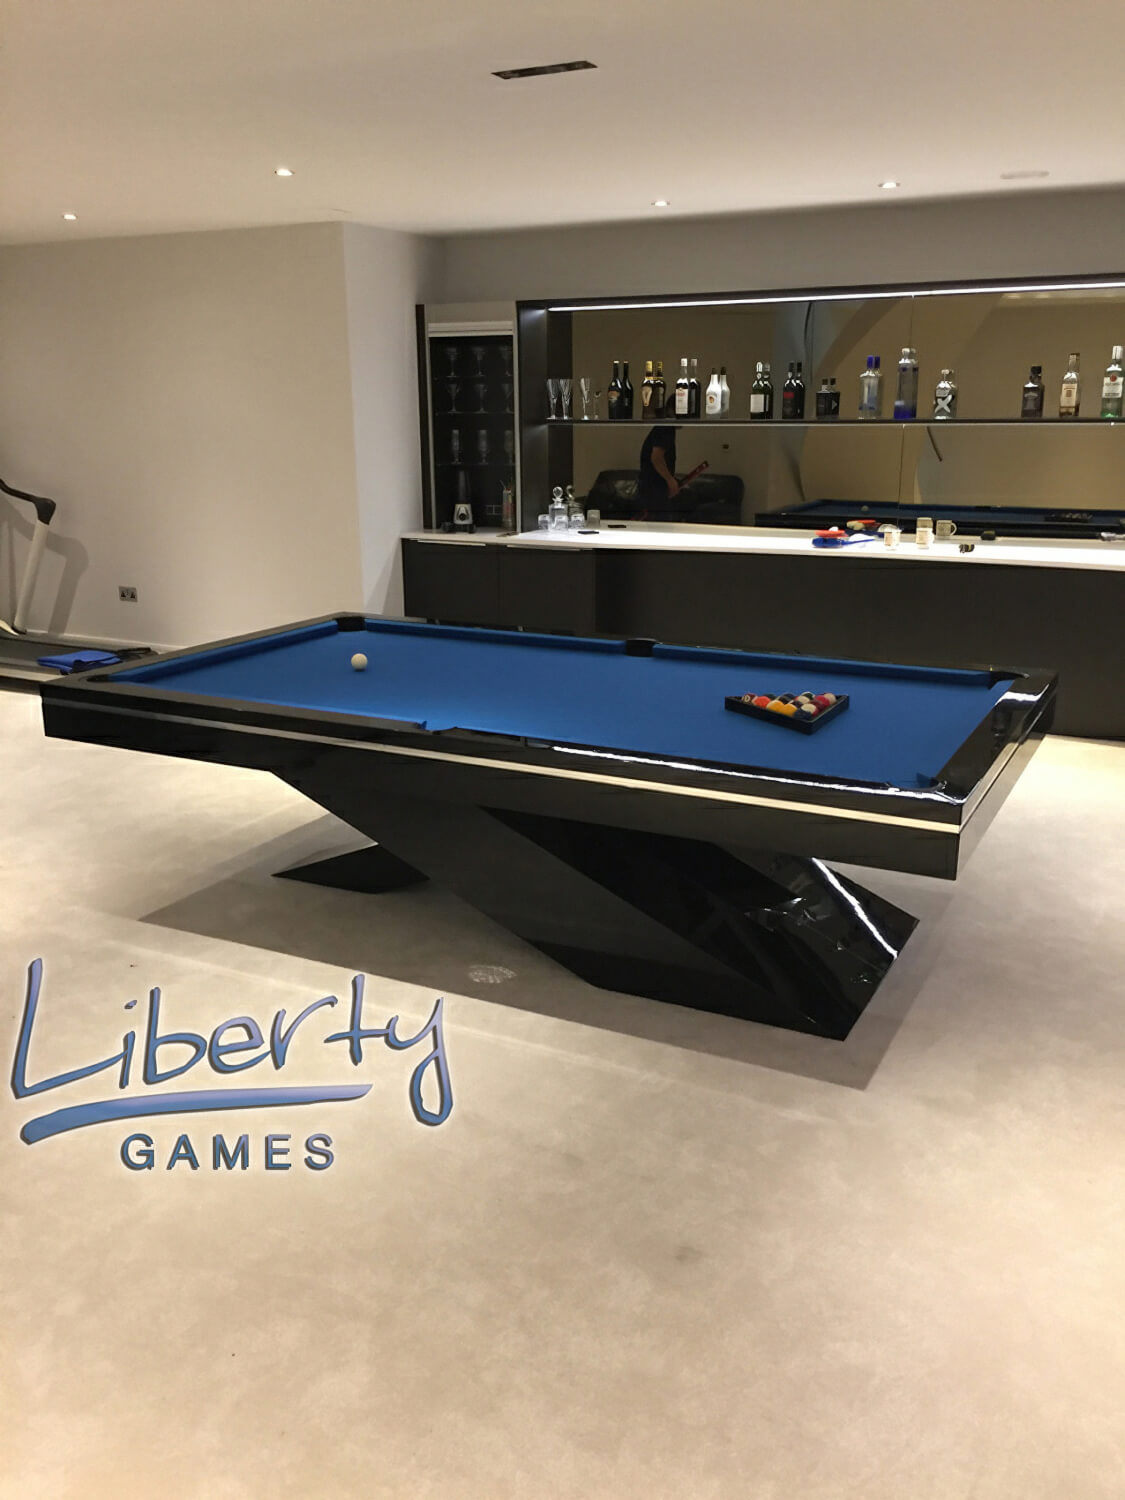 Olympus Pool Table Liberty Games